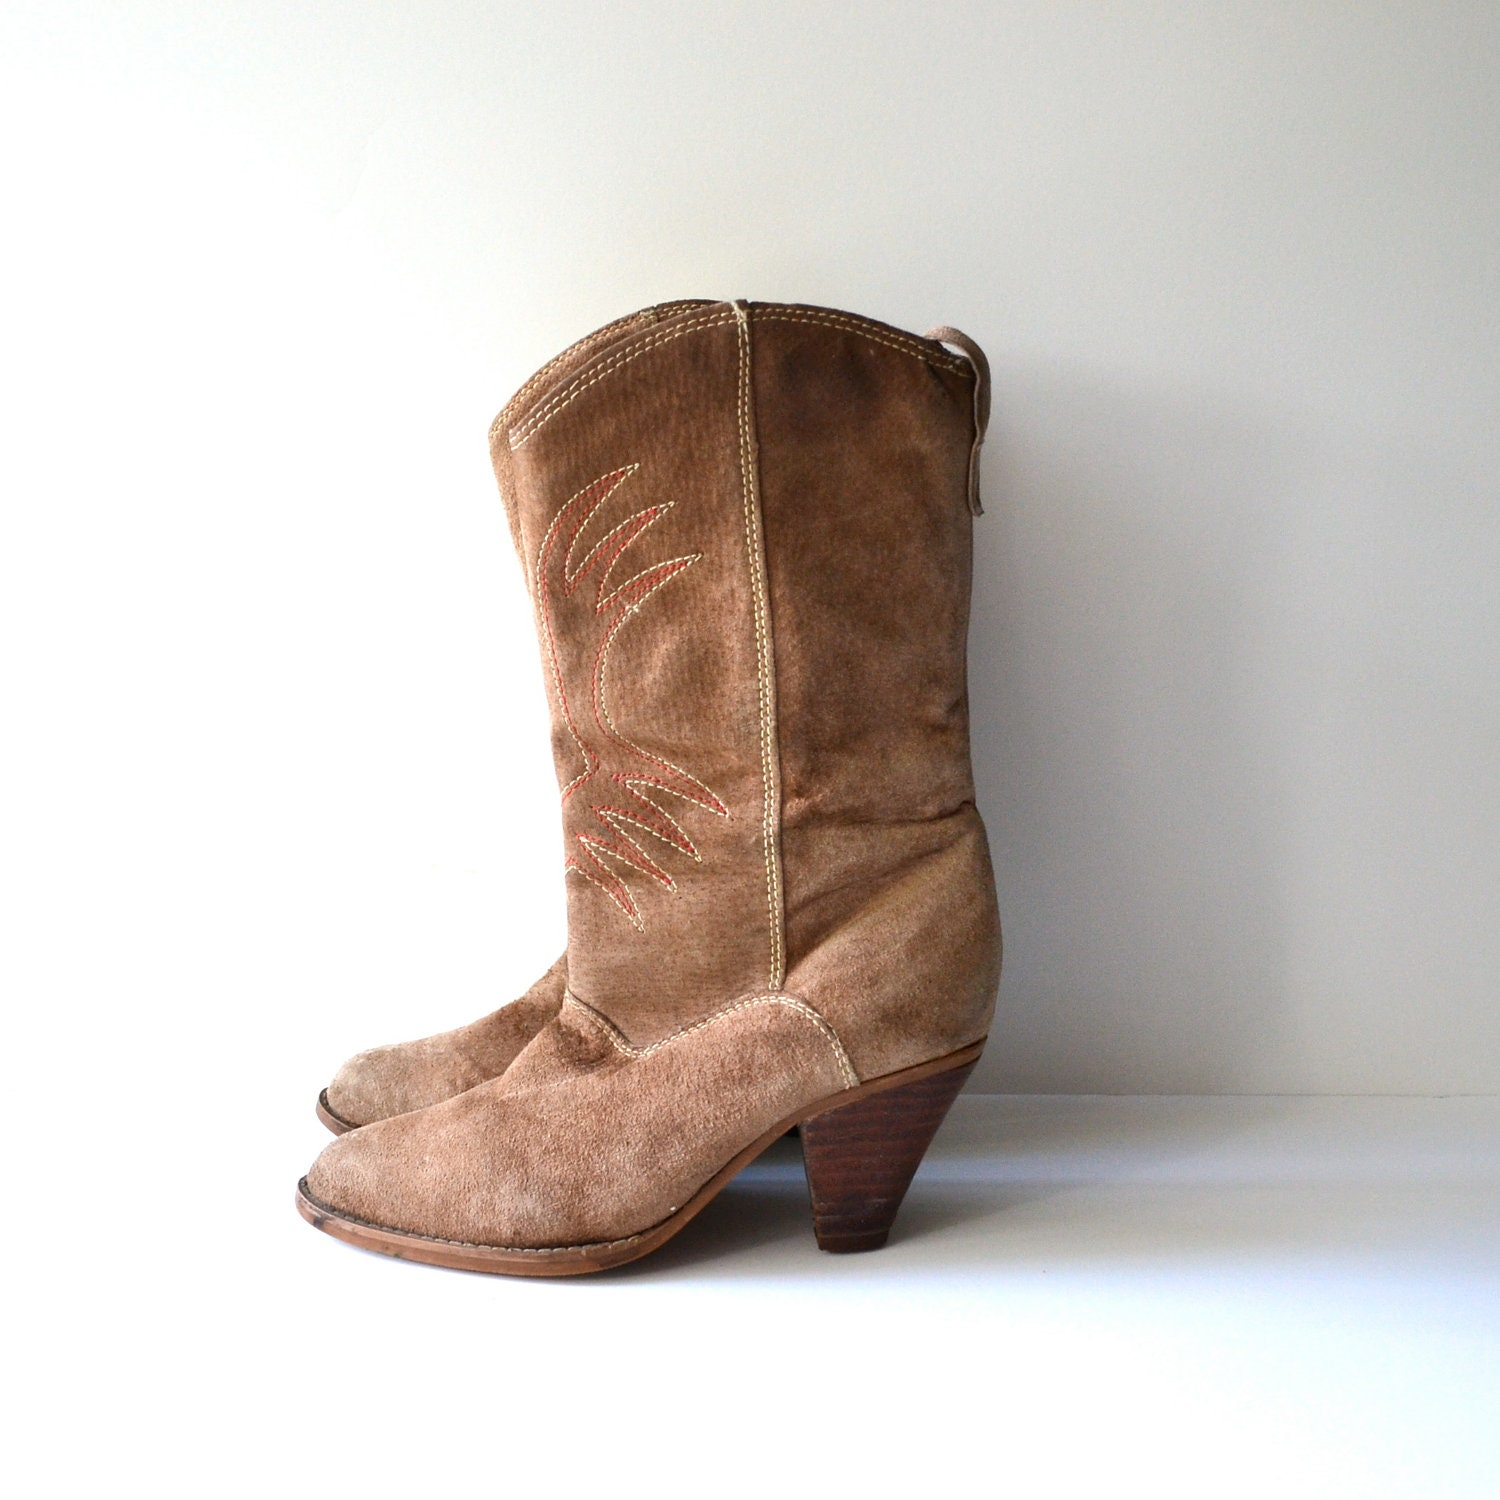 vintage suede cowboy boots high heel western boot size